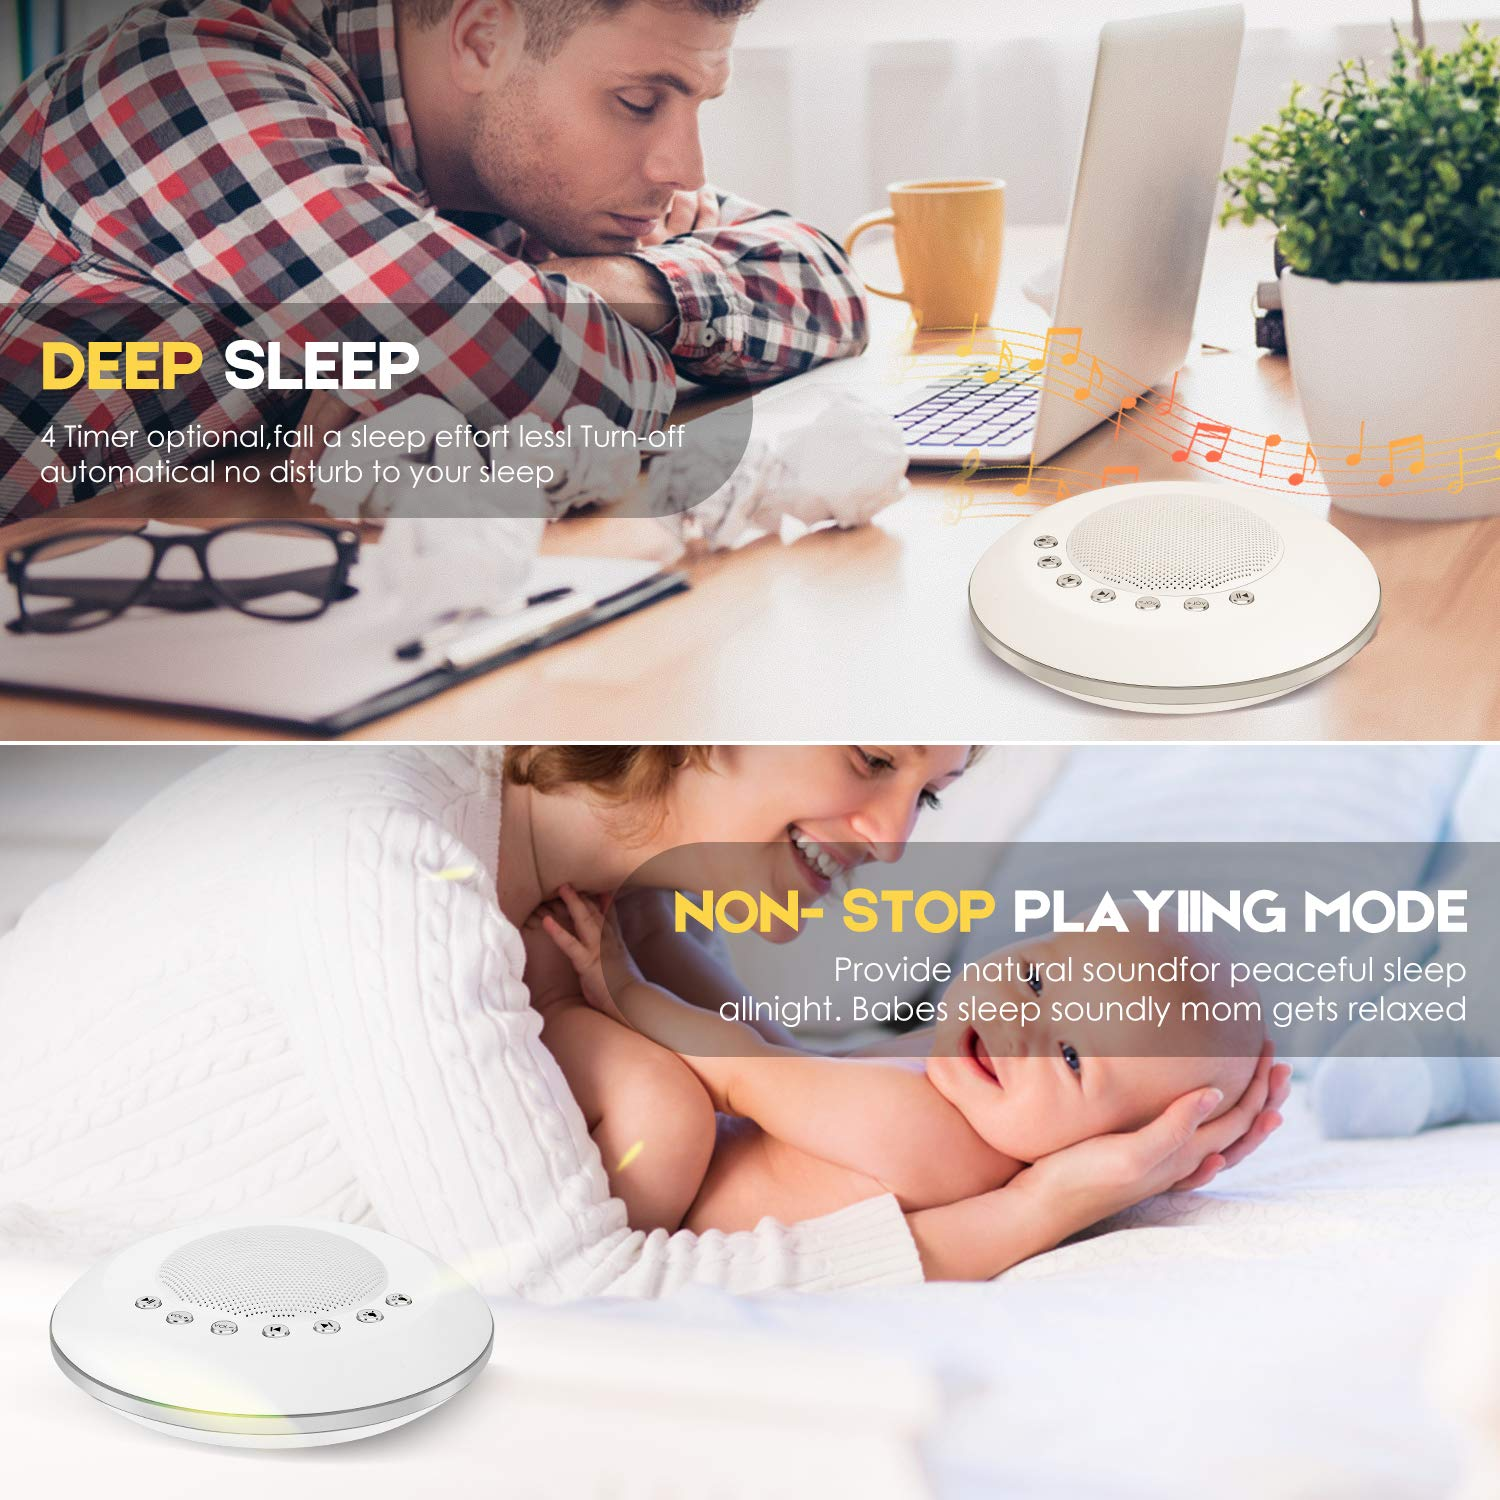 Sound Machine - White Noise Machine for Sleeping, with LED Colorful Night Light 20 Soothing HiFi Sounds, Continuous or Timer, Rechargeable Battery or USB Output Charger by EliveBuy (Image #4)